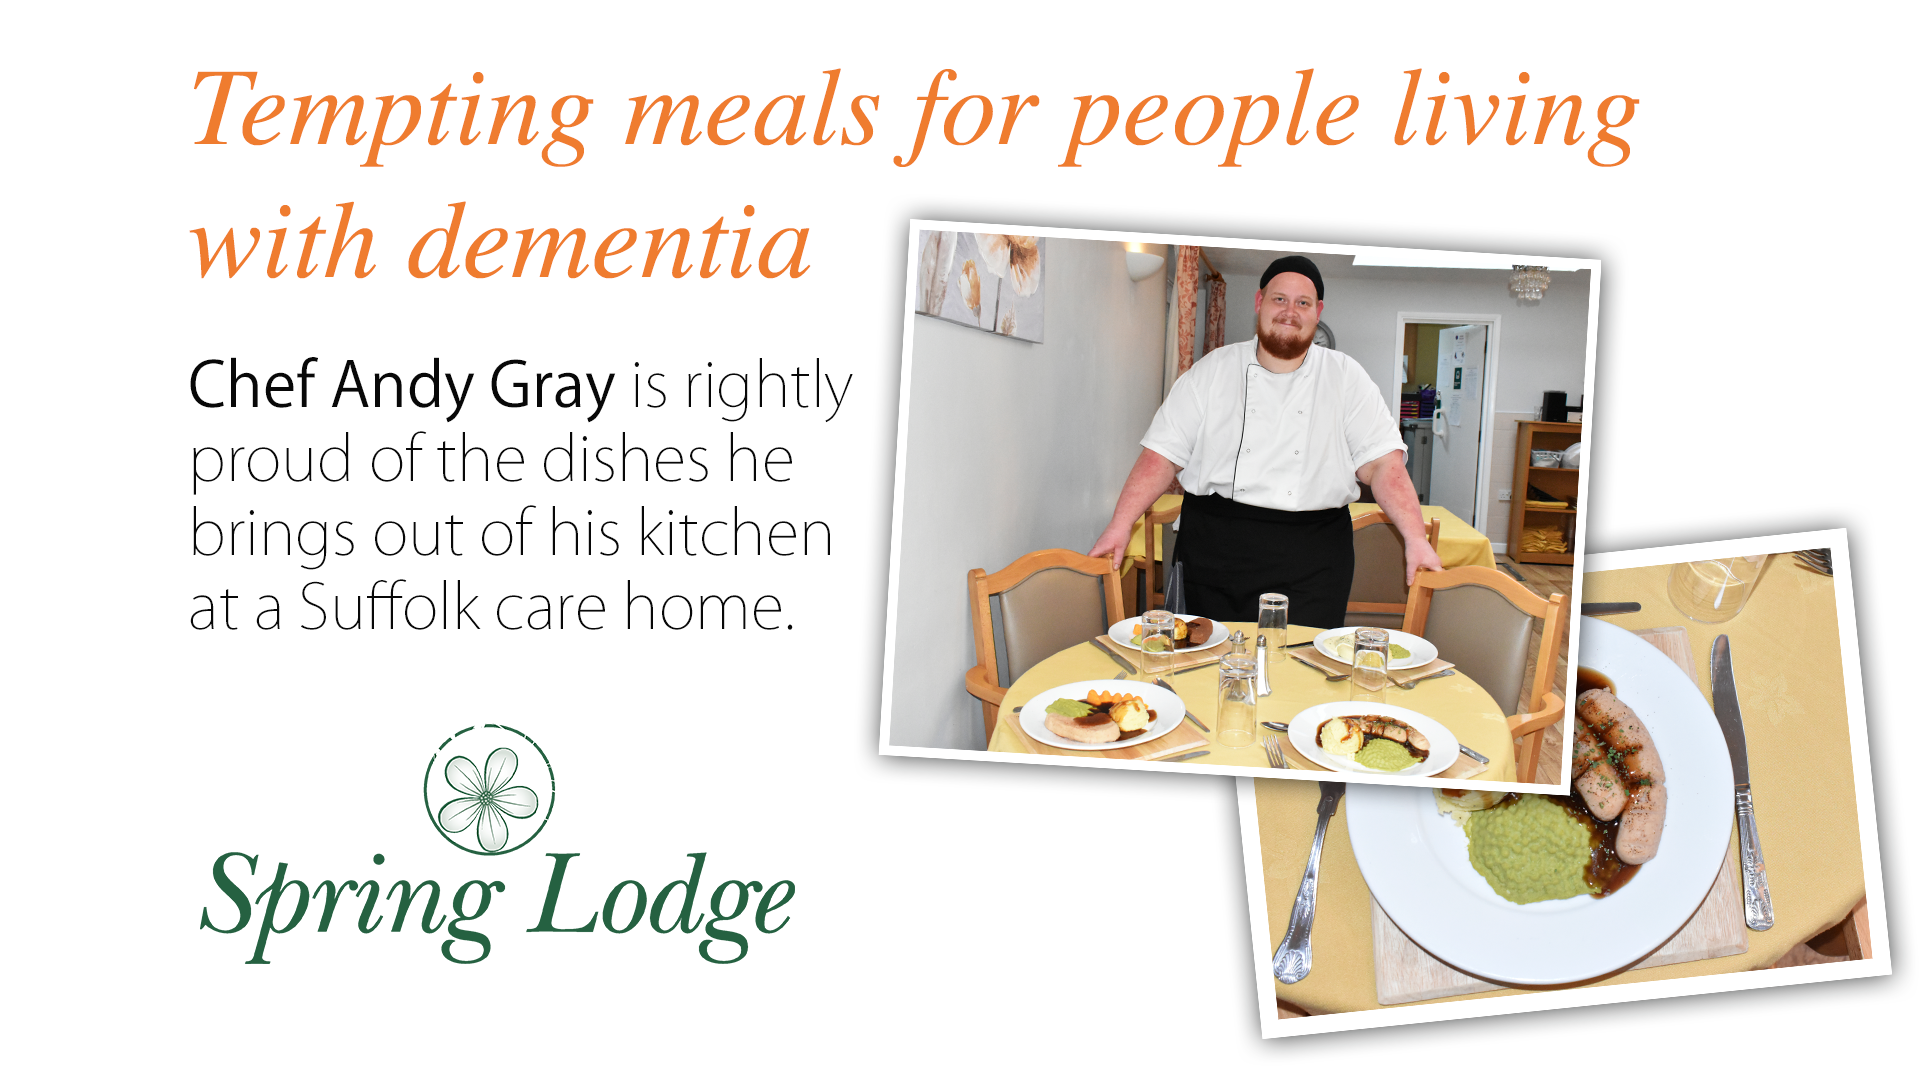 Tempting meals for people living with dementia who may have difficulty swallowing their food